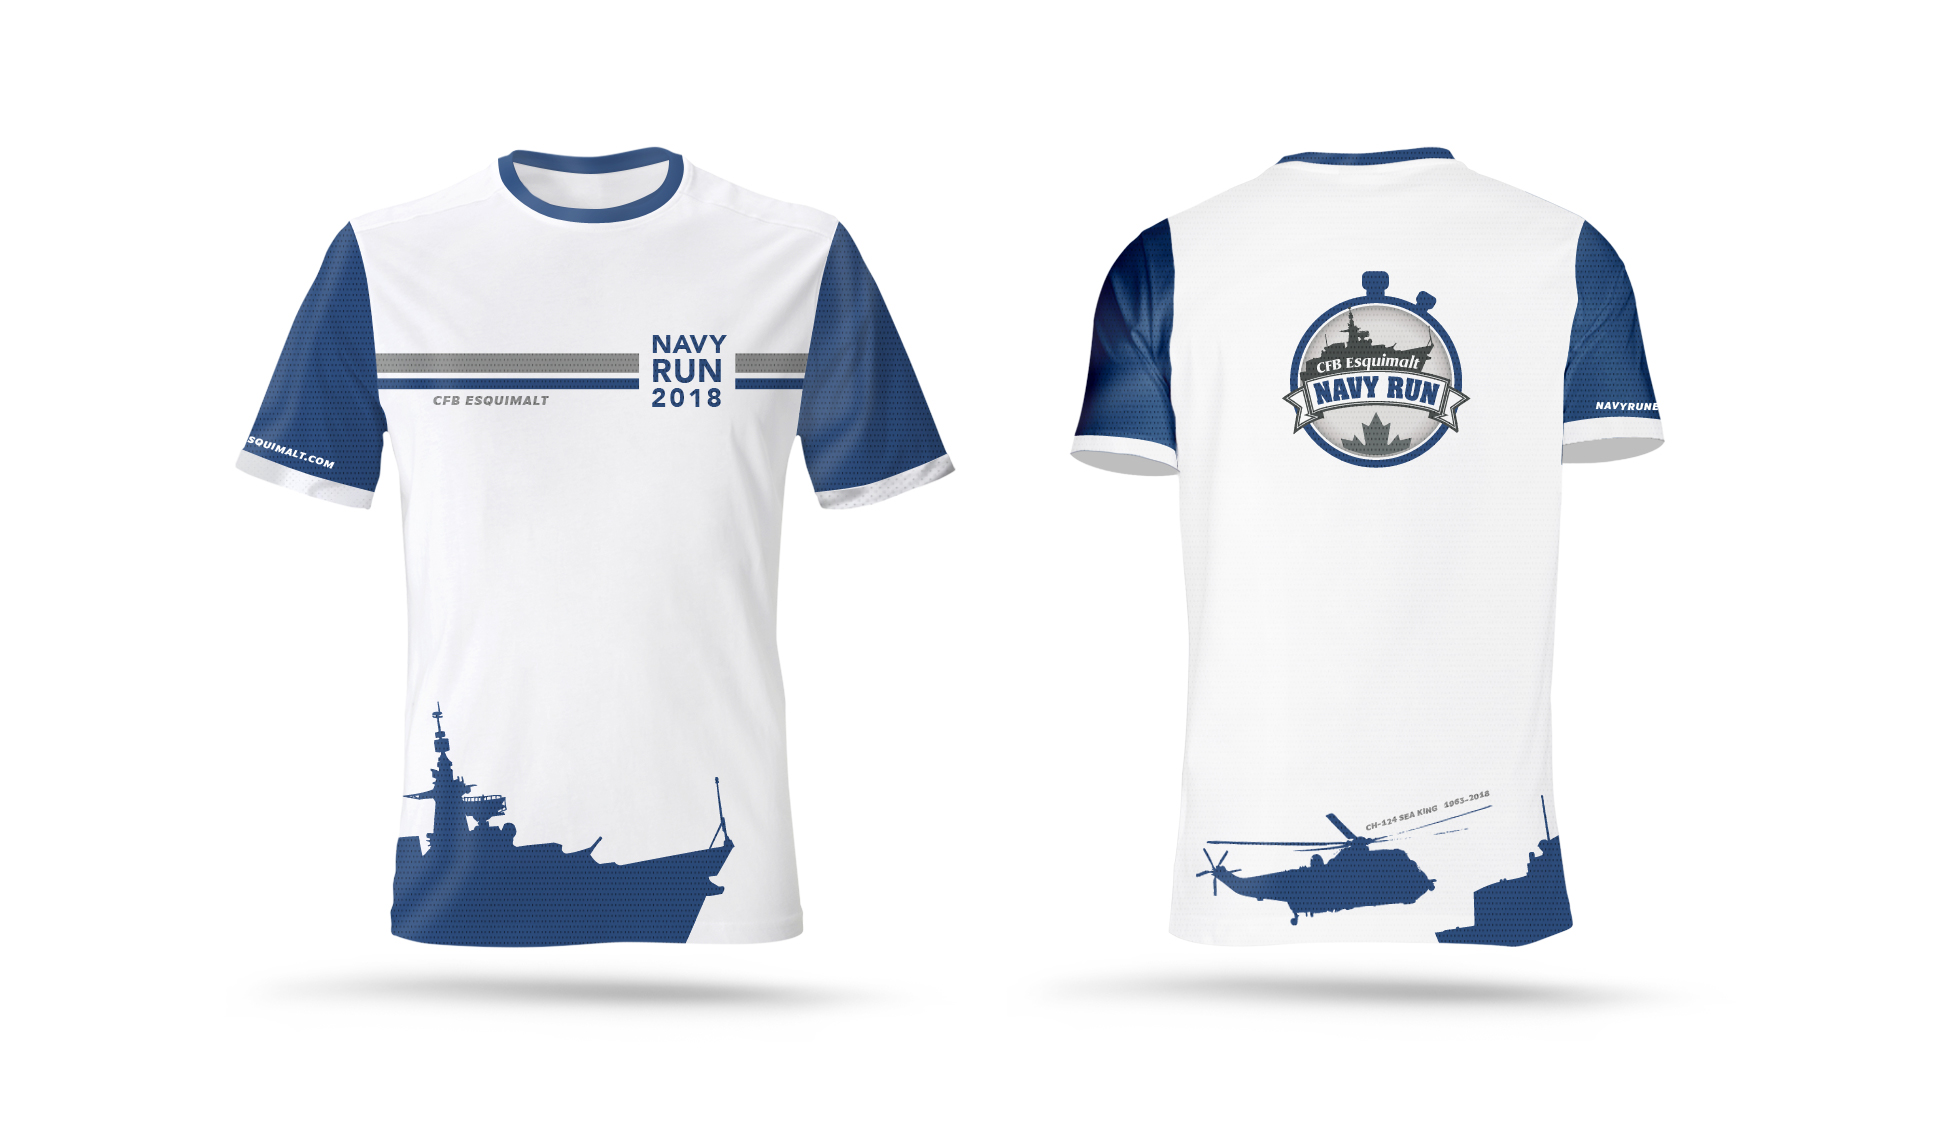 Navy Run 2018 T-Shirt